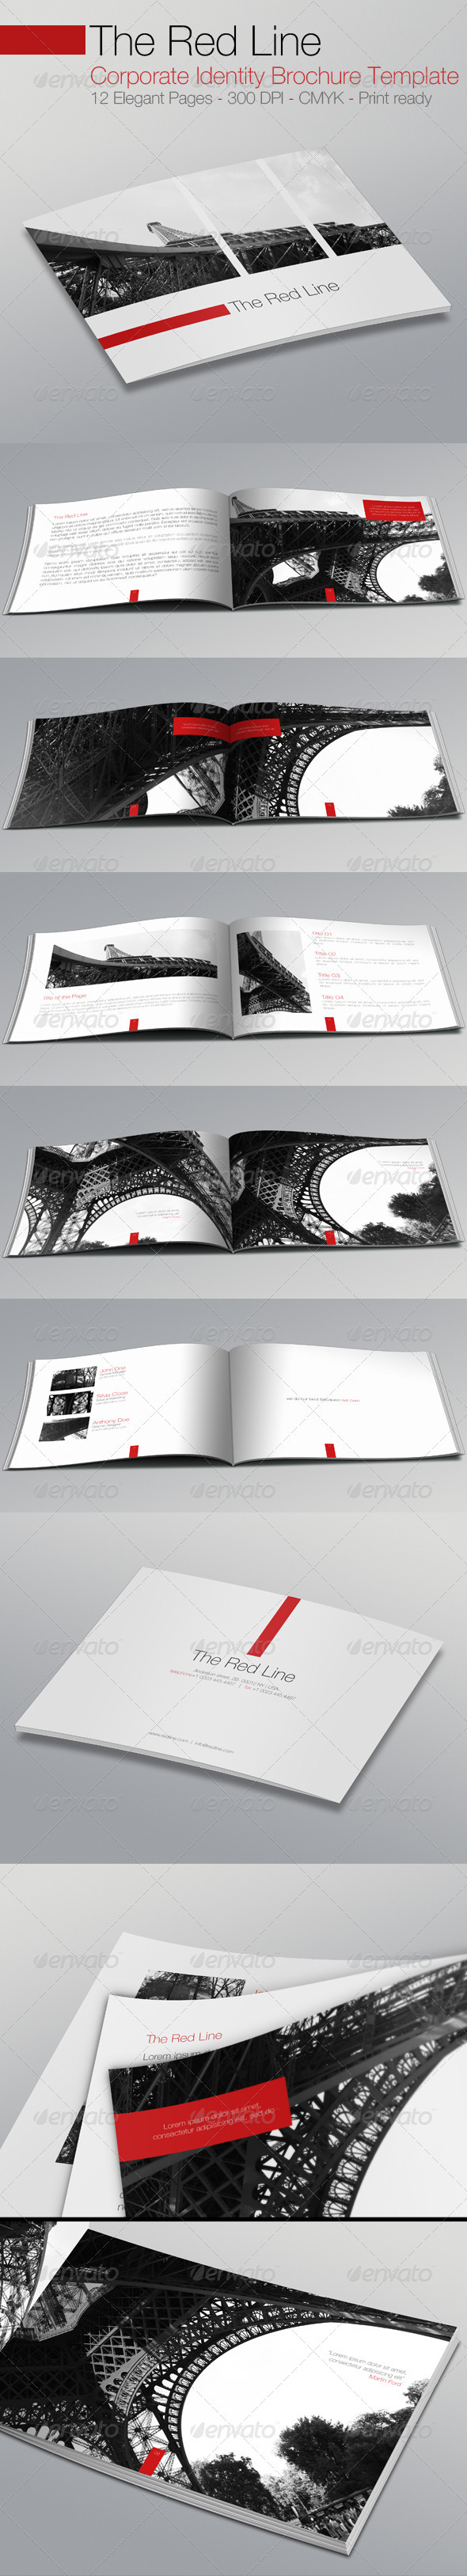 The Red Line Brochure Corporate Identity Template - Corporate Brochures